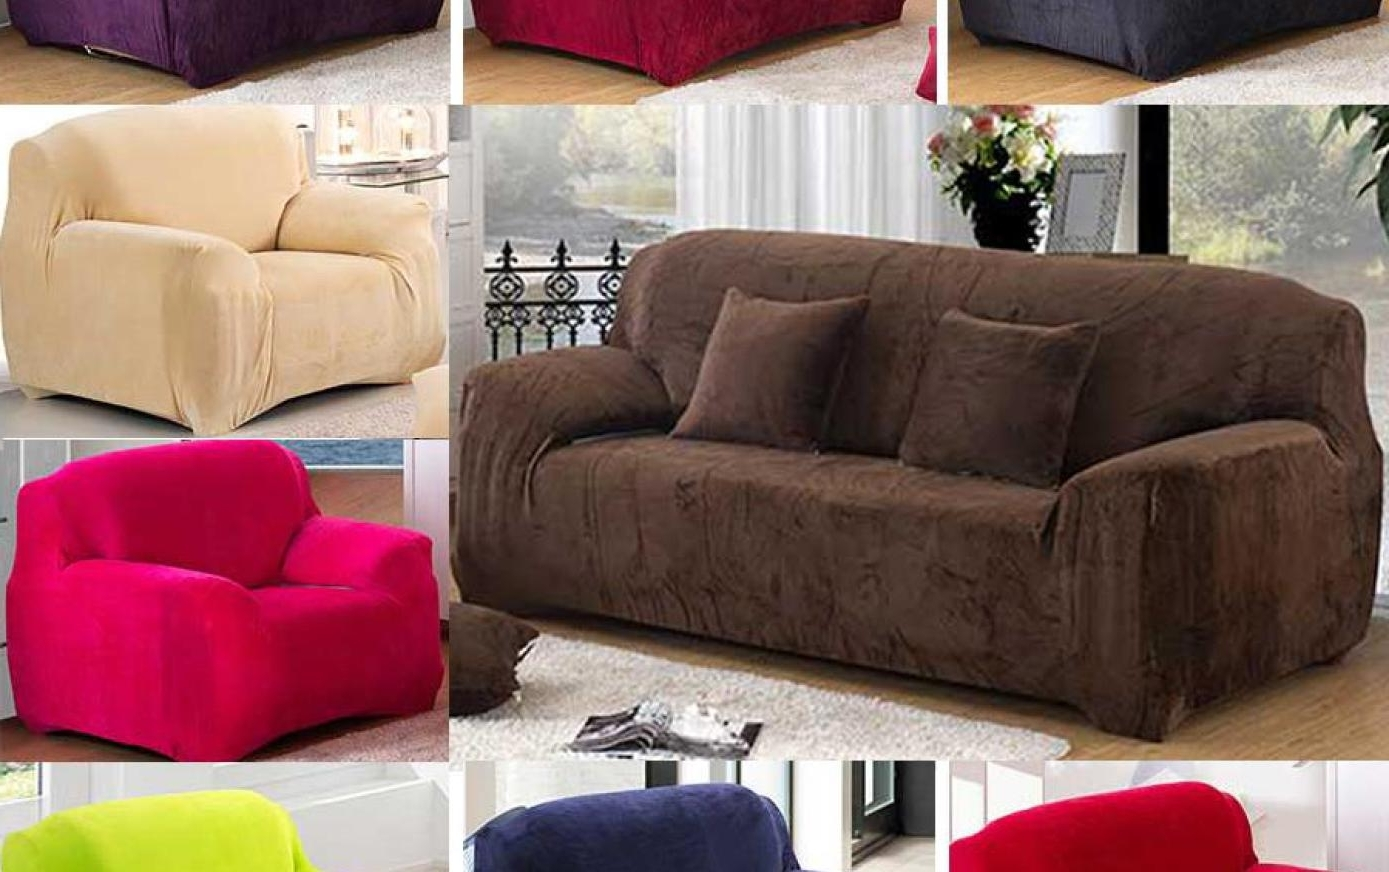 Rowe Sofas Sofas With Removable Washable Covers Ikea Ektorp Sofa Regarding Fashionable Sofas With Washable Covers (View 19 of 20)